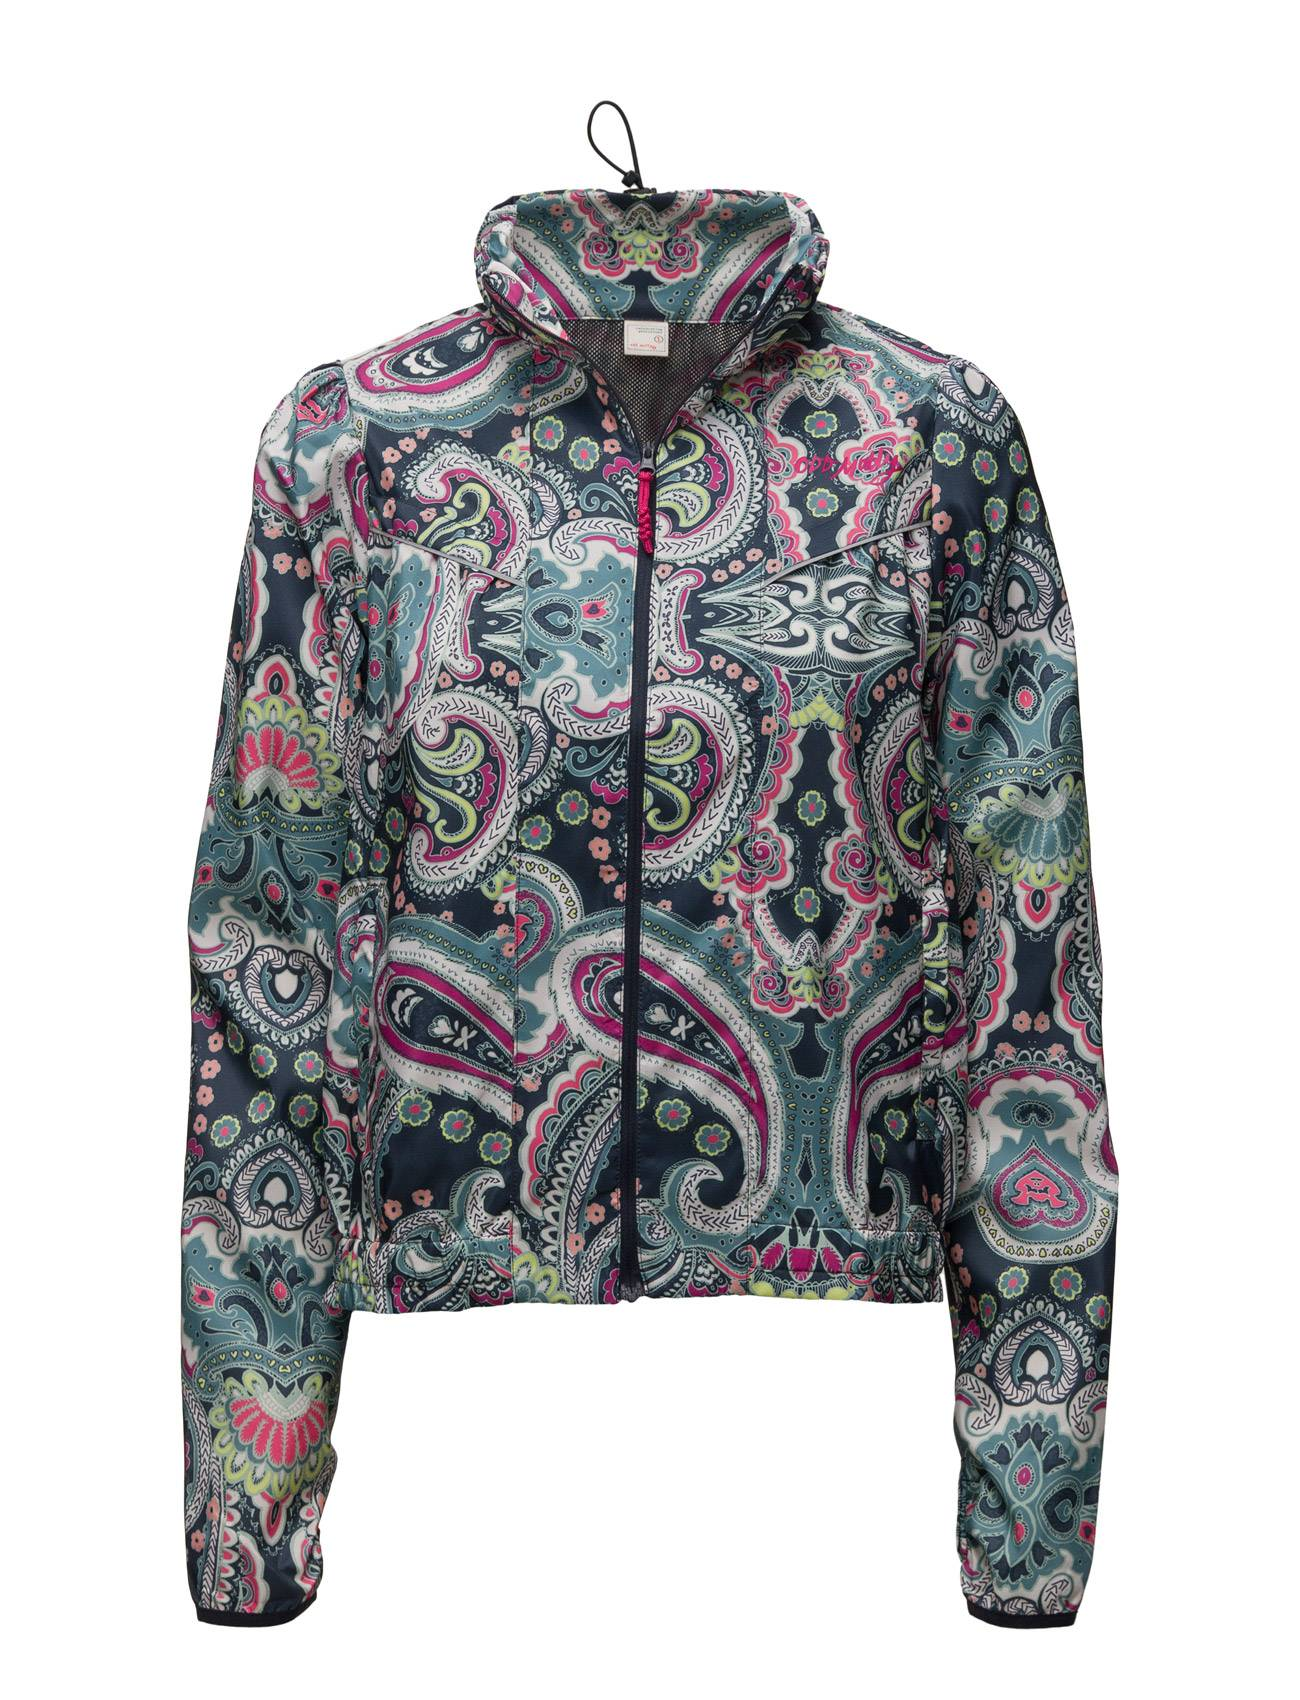 ODD MOLLY ACTIVE WEAR Upbeat Jacket